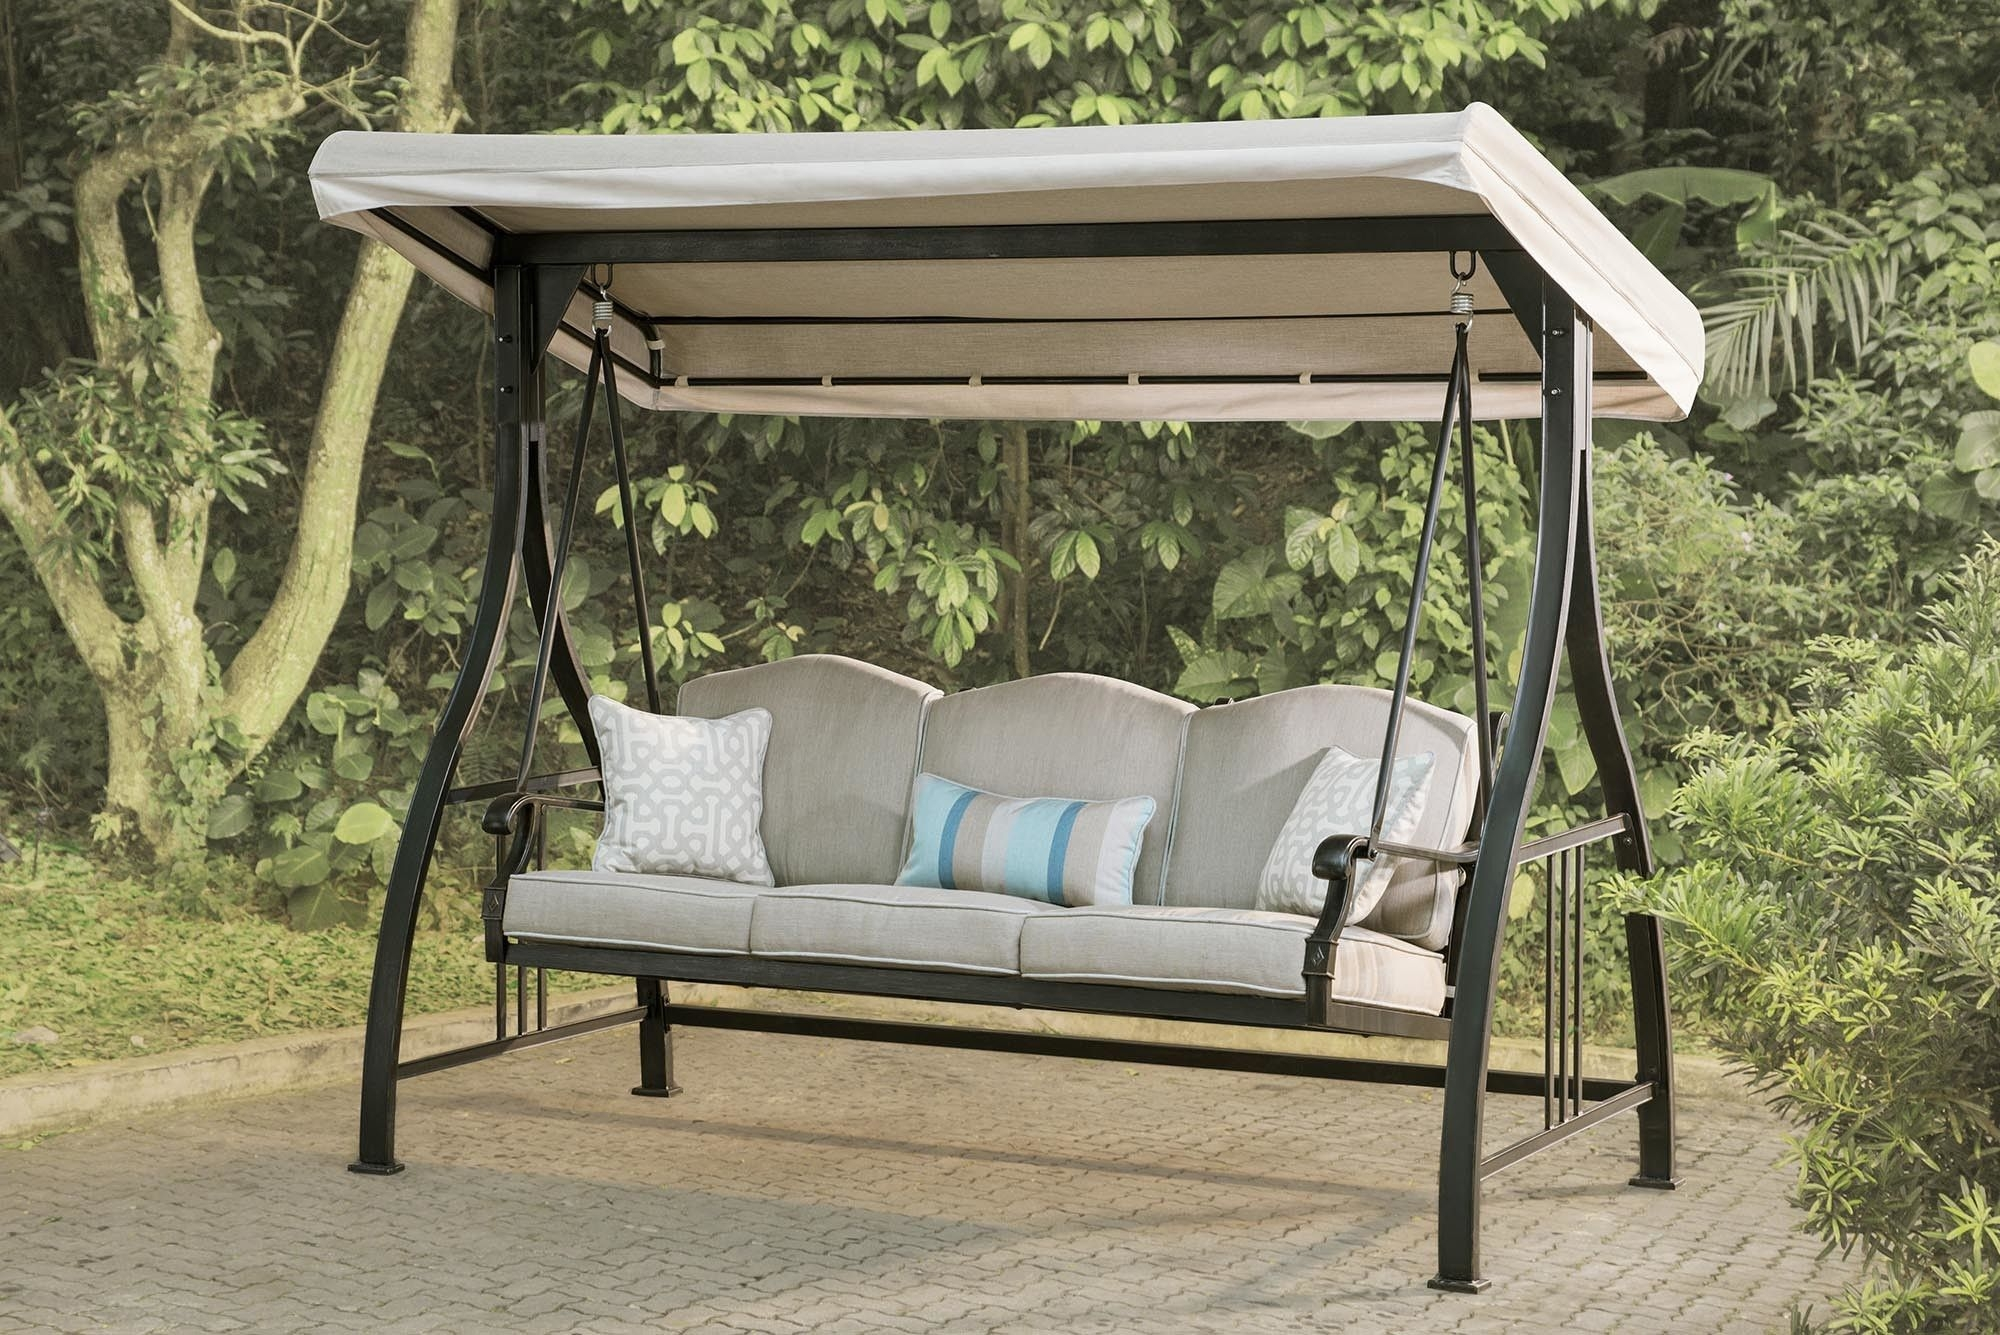 Free Standing Porch Swing You Ll Love In 2021 Visualhunt